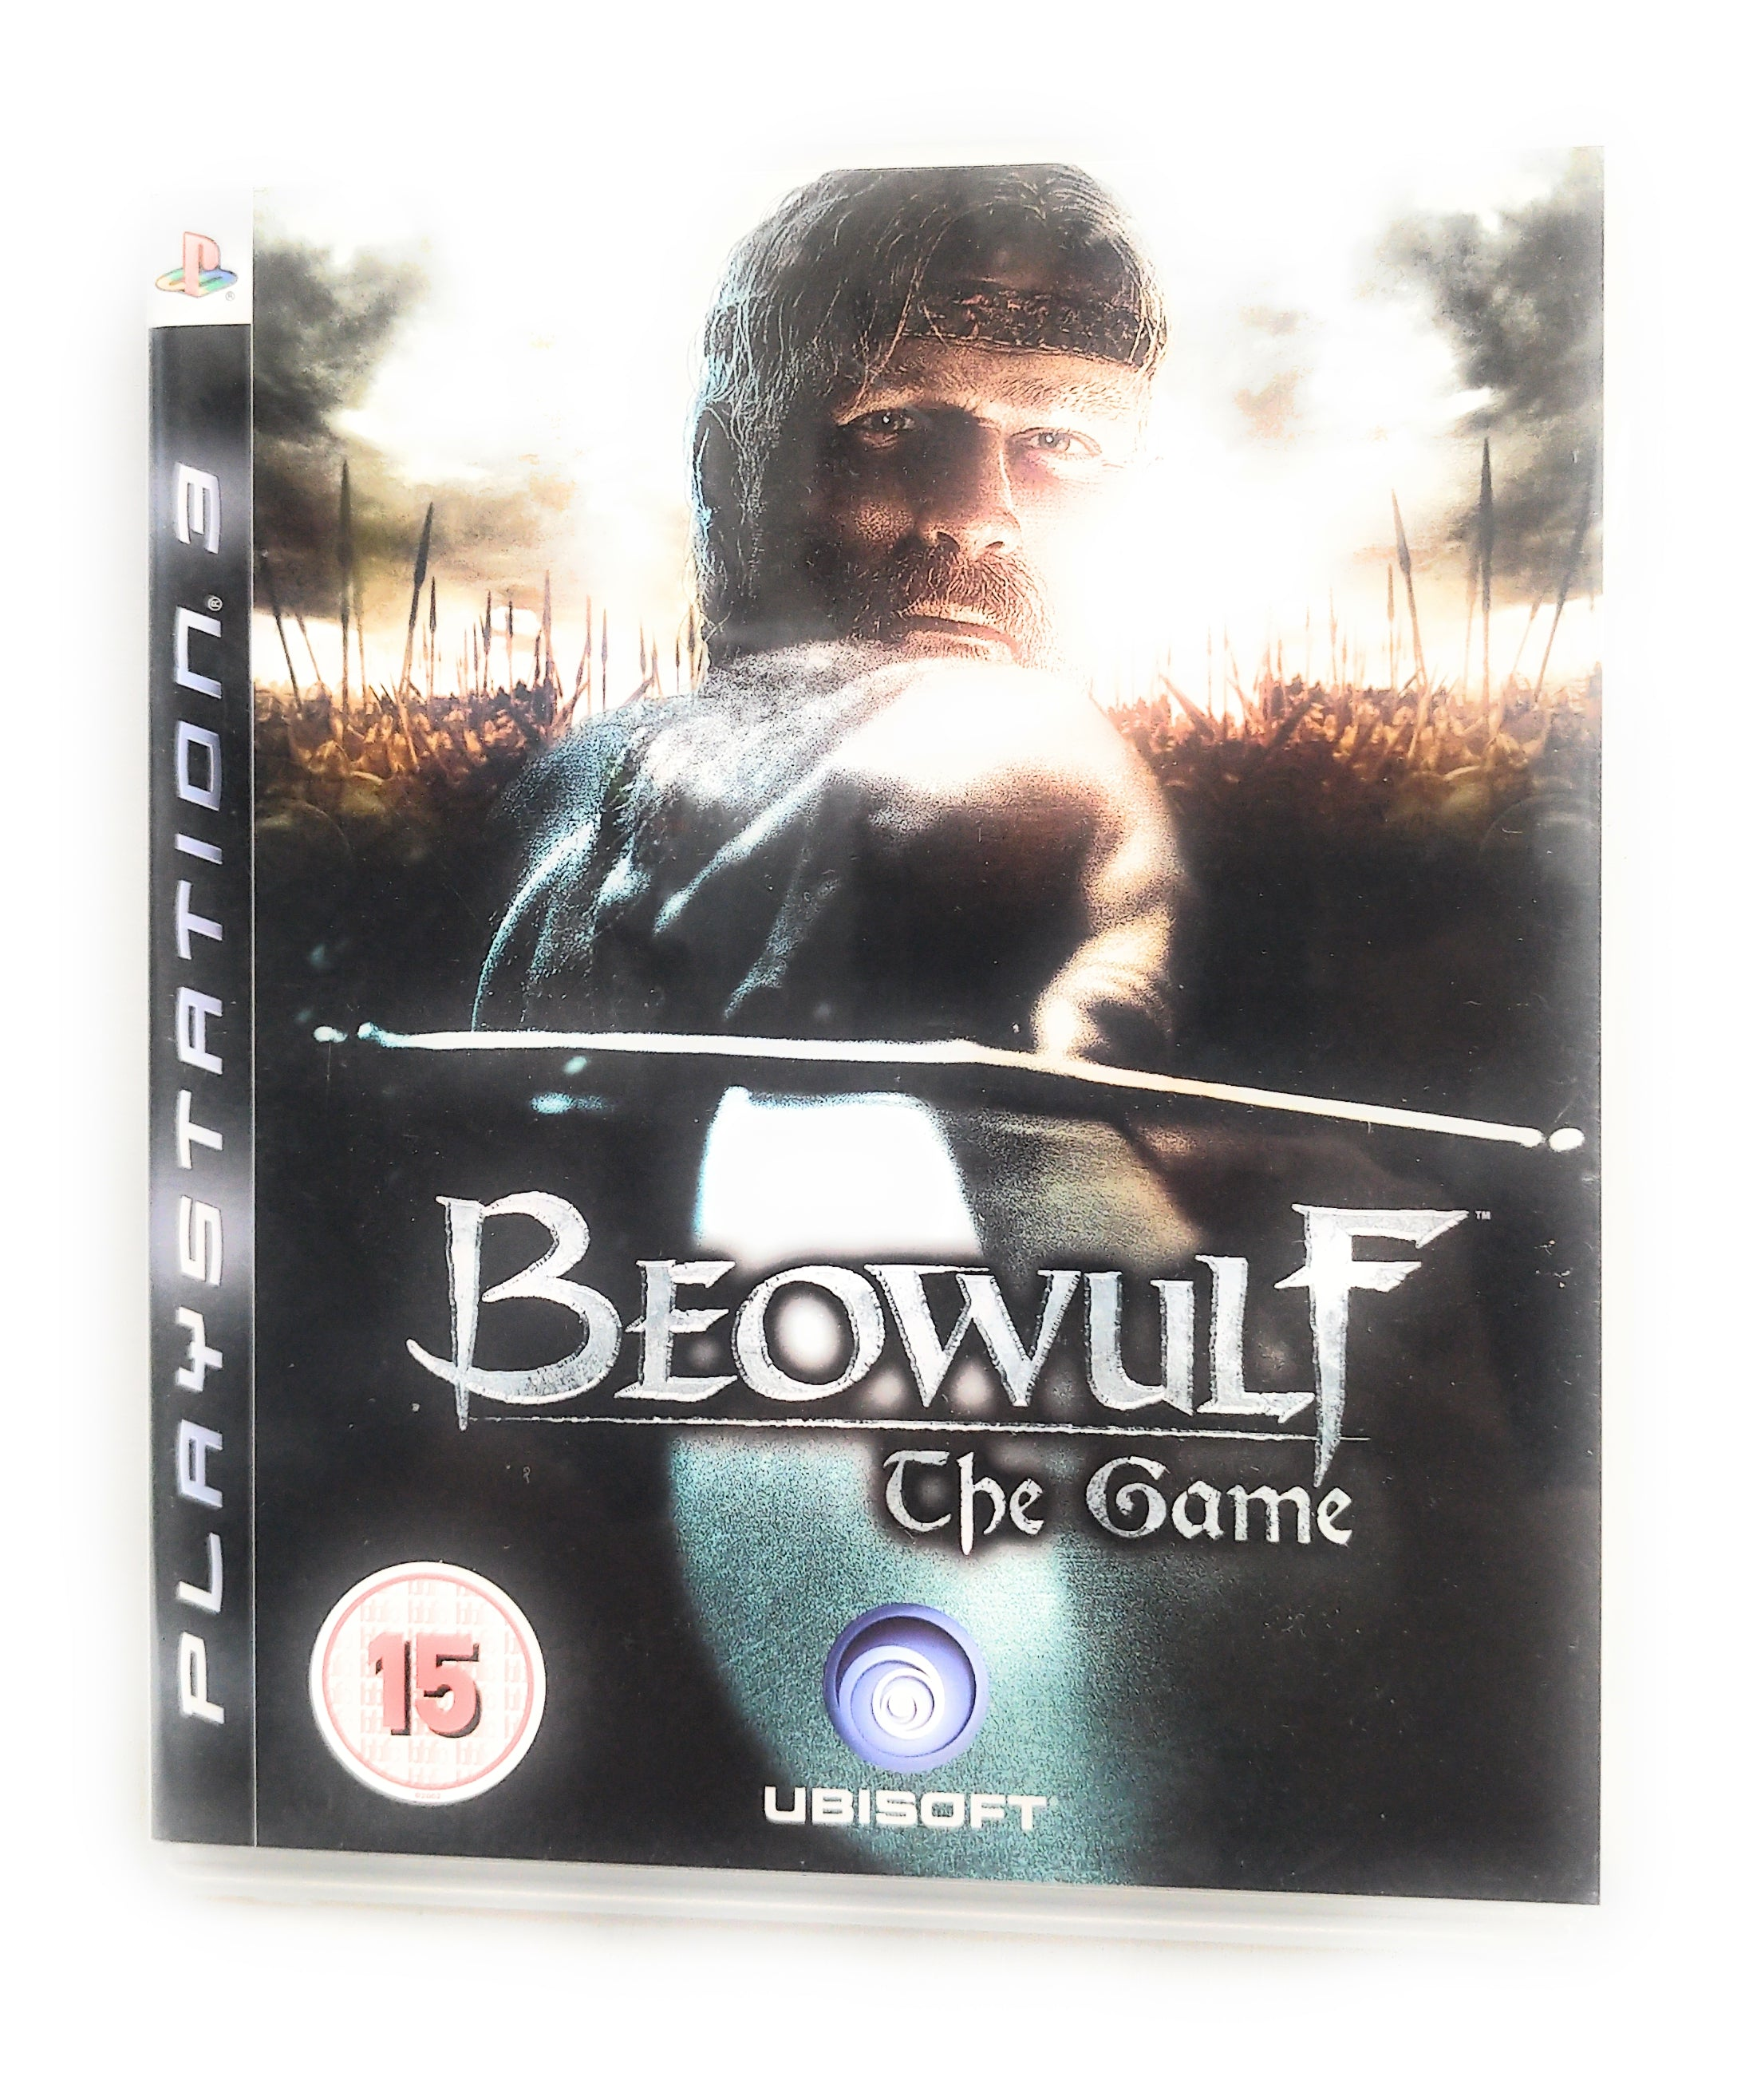 Beowulf The Game - PAL - Sony Playstation 3 / PS3 Game - Complete